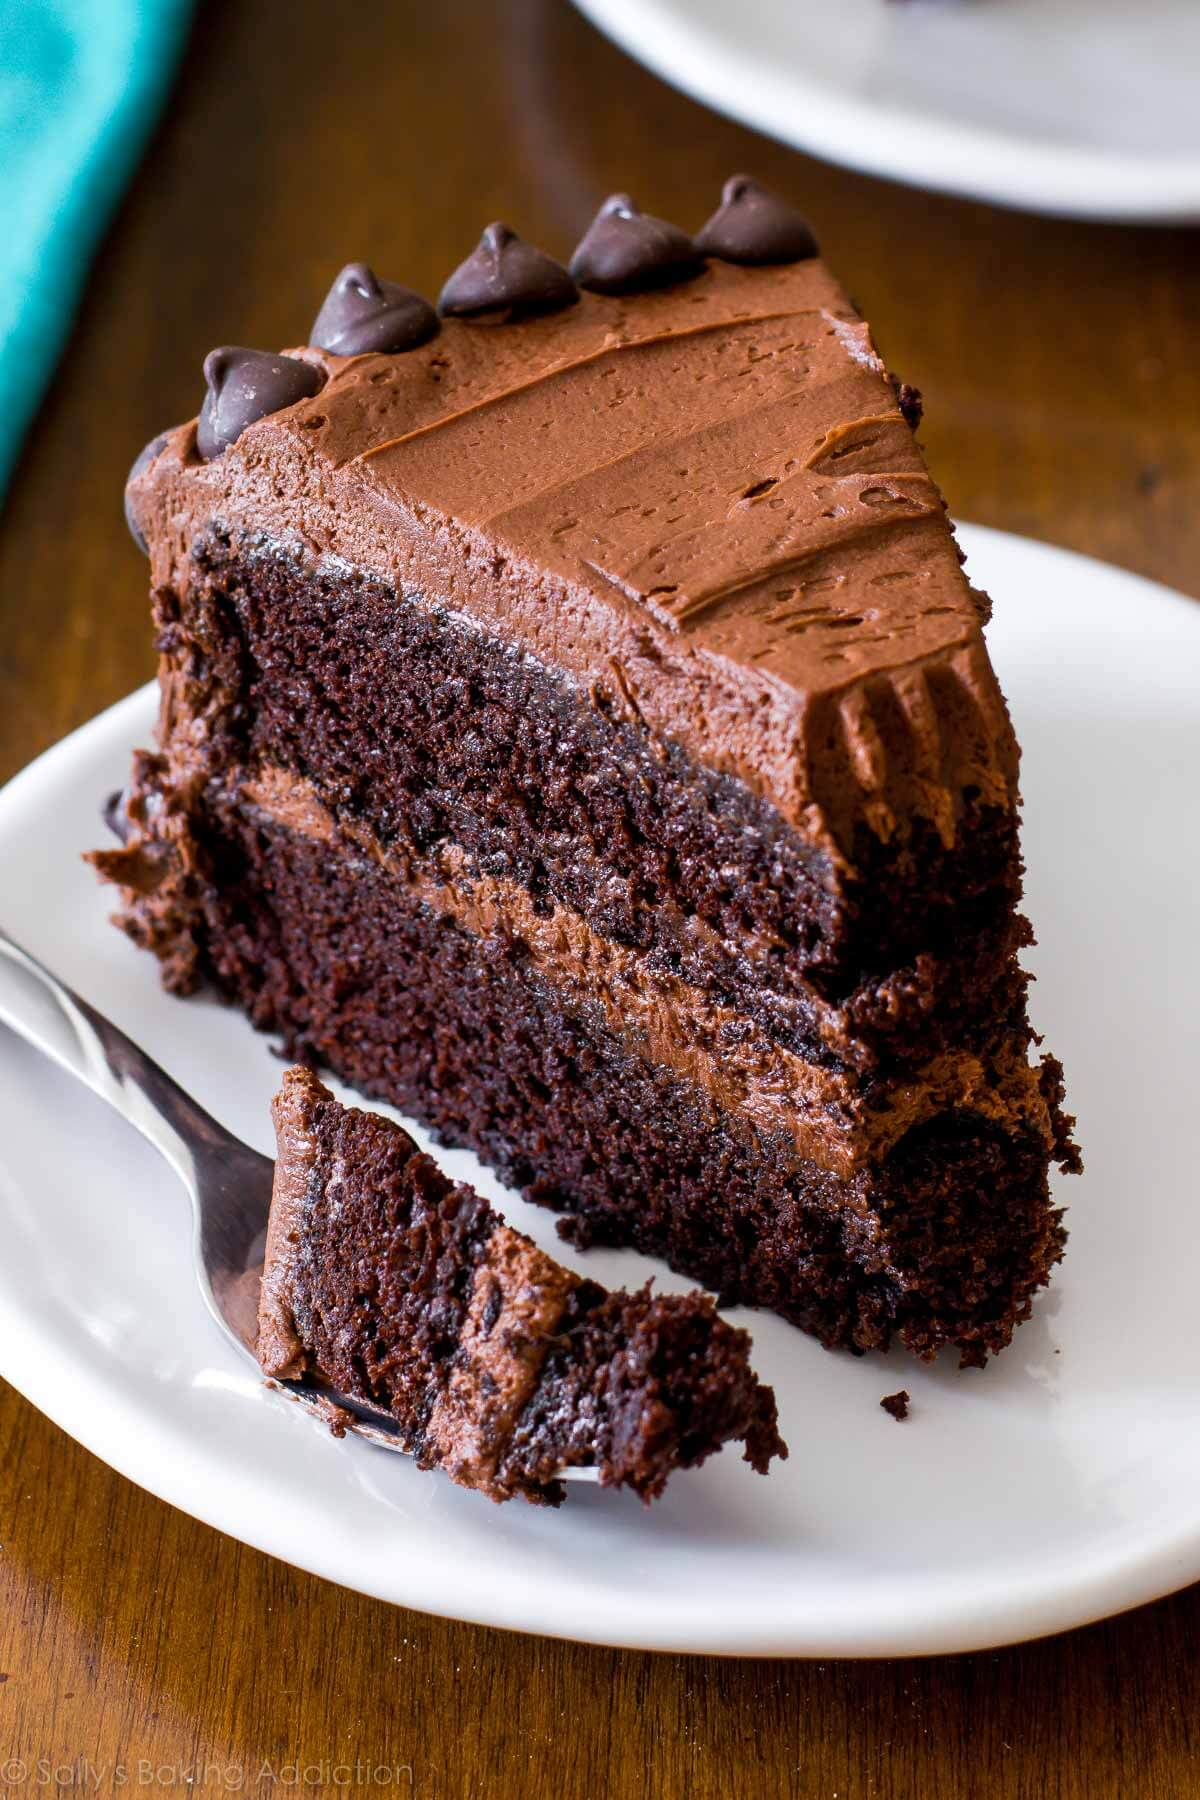 Free Full Screen Fall Wallpaper Triple Chocolate Layer Cake Sallys Baking Addiction